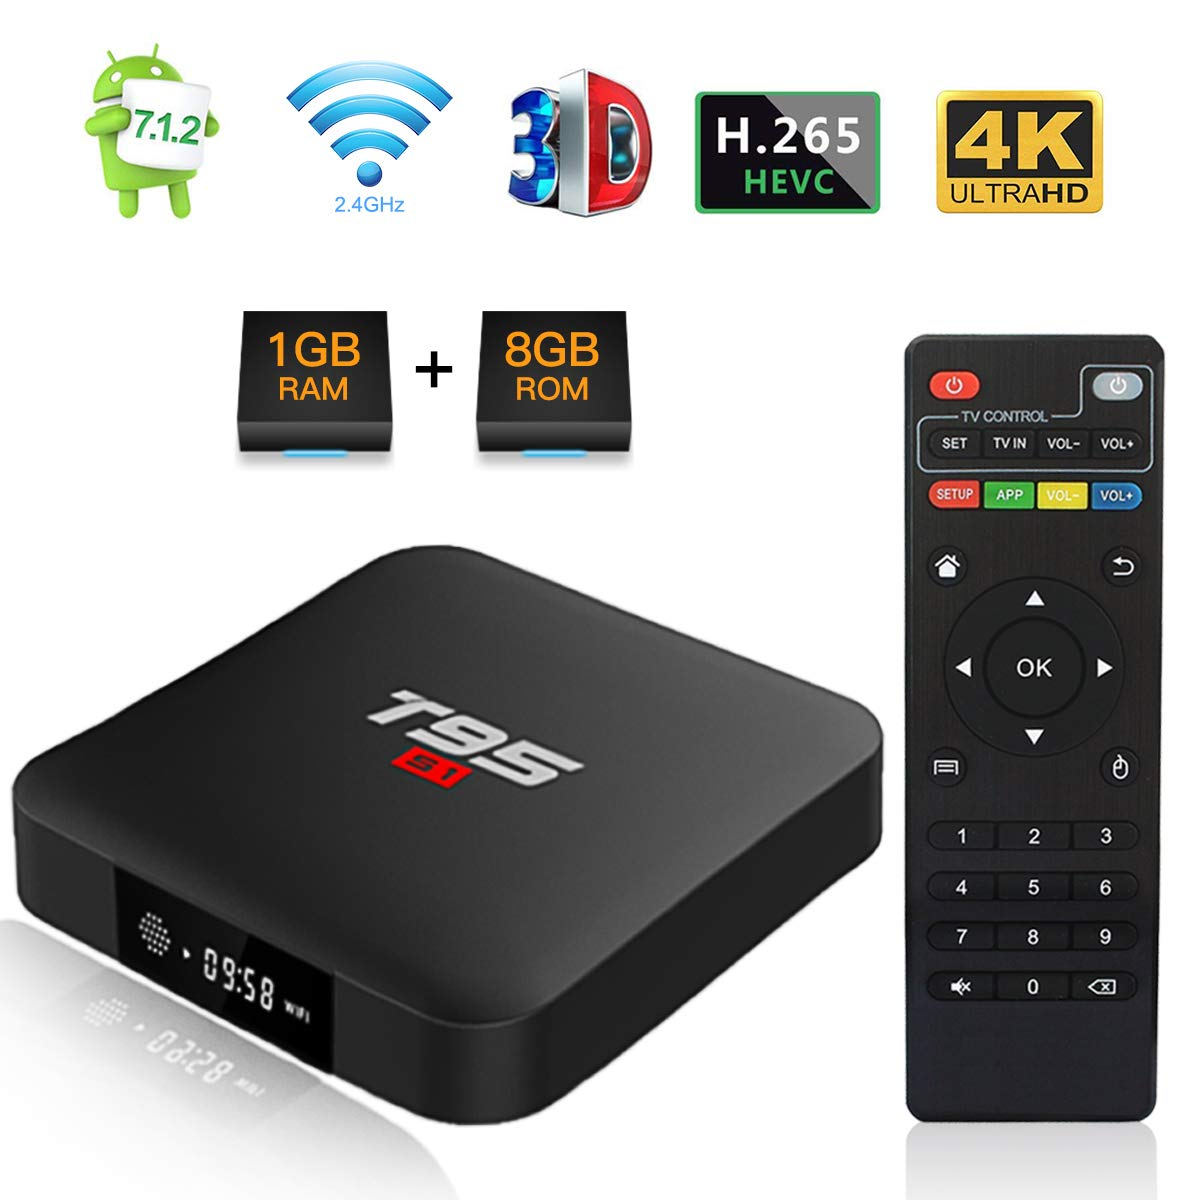 Android 7.1 TV Box, T95 S1 Smart Internet TV Box Amlogic S905W Quad Core 1GB/8GB with Digital Display HDMI Ultra HD 4K Ethernet 2.4GHz WiFi H.265 Video Decoder by TUREWELL